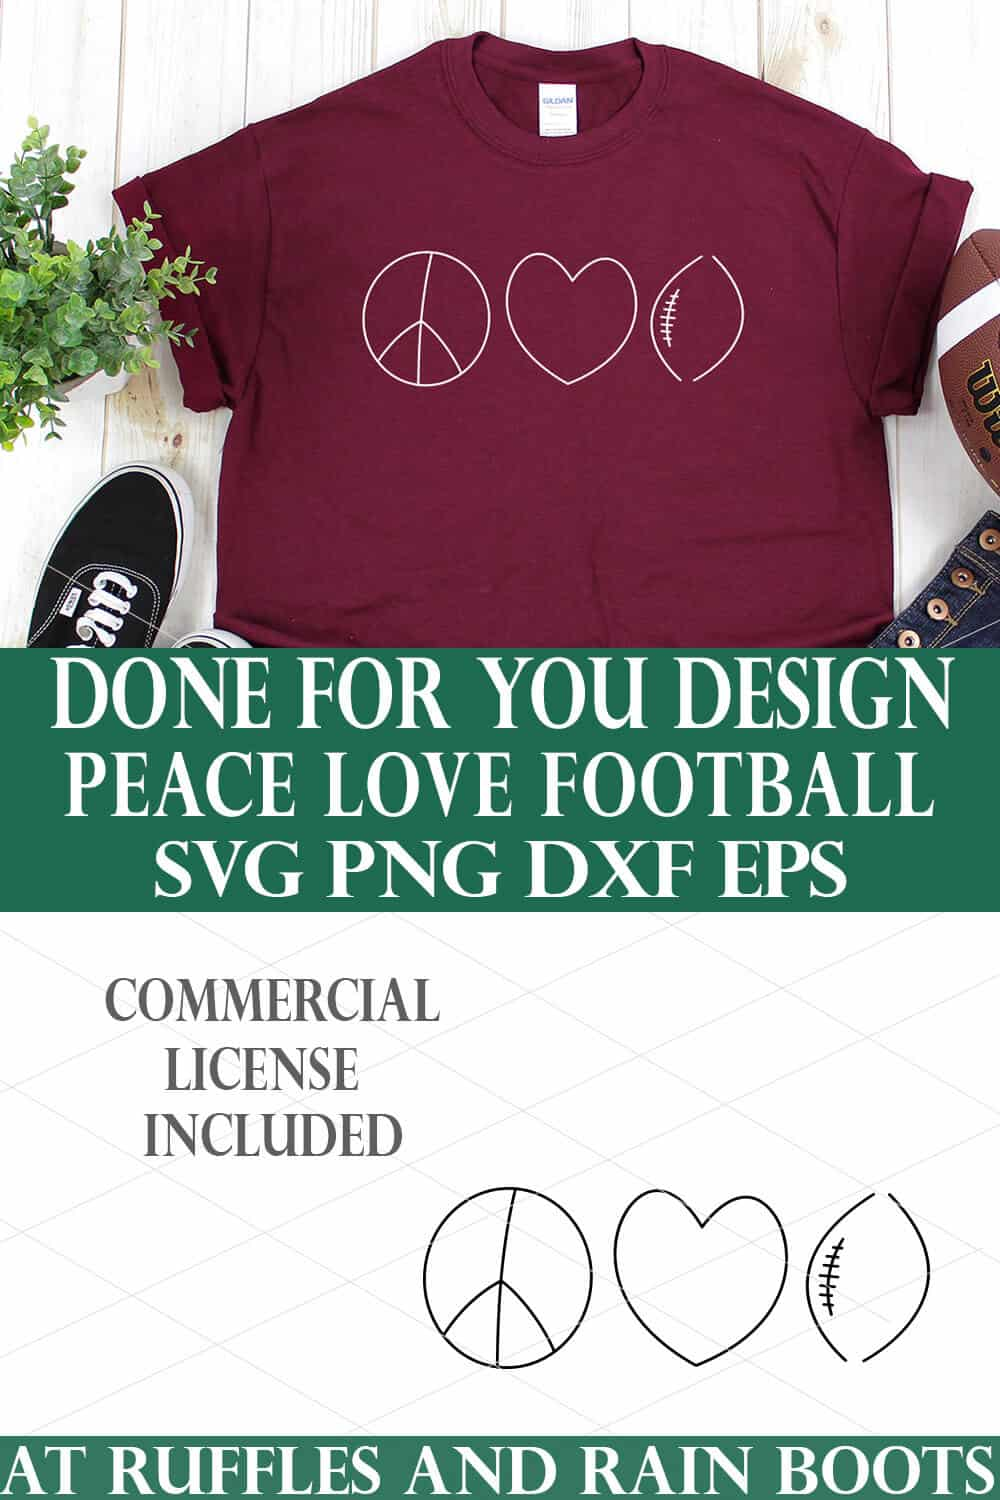 vertical collage of peace love football svg on maroon t shirt on white background in hand drawn style from ruffles and rain boots made for cricut and silhouette cutting machines